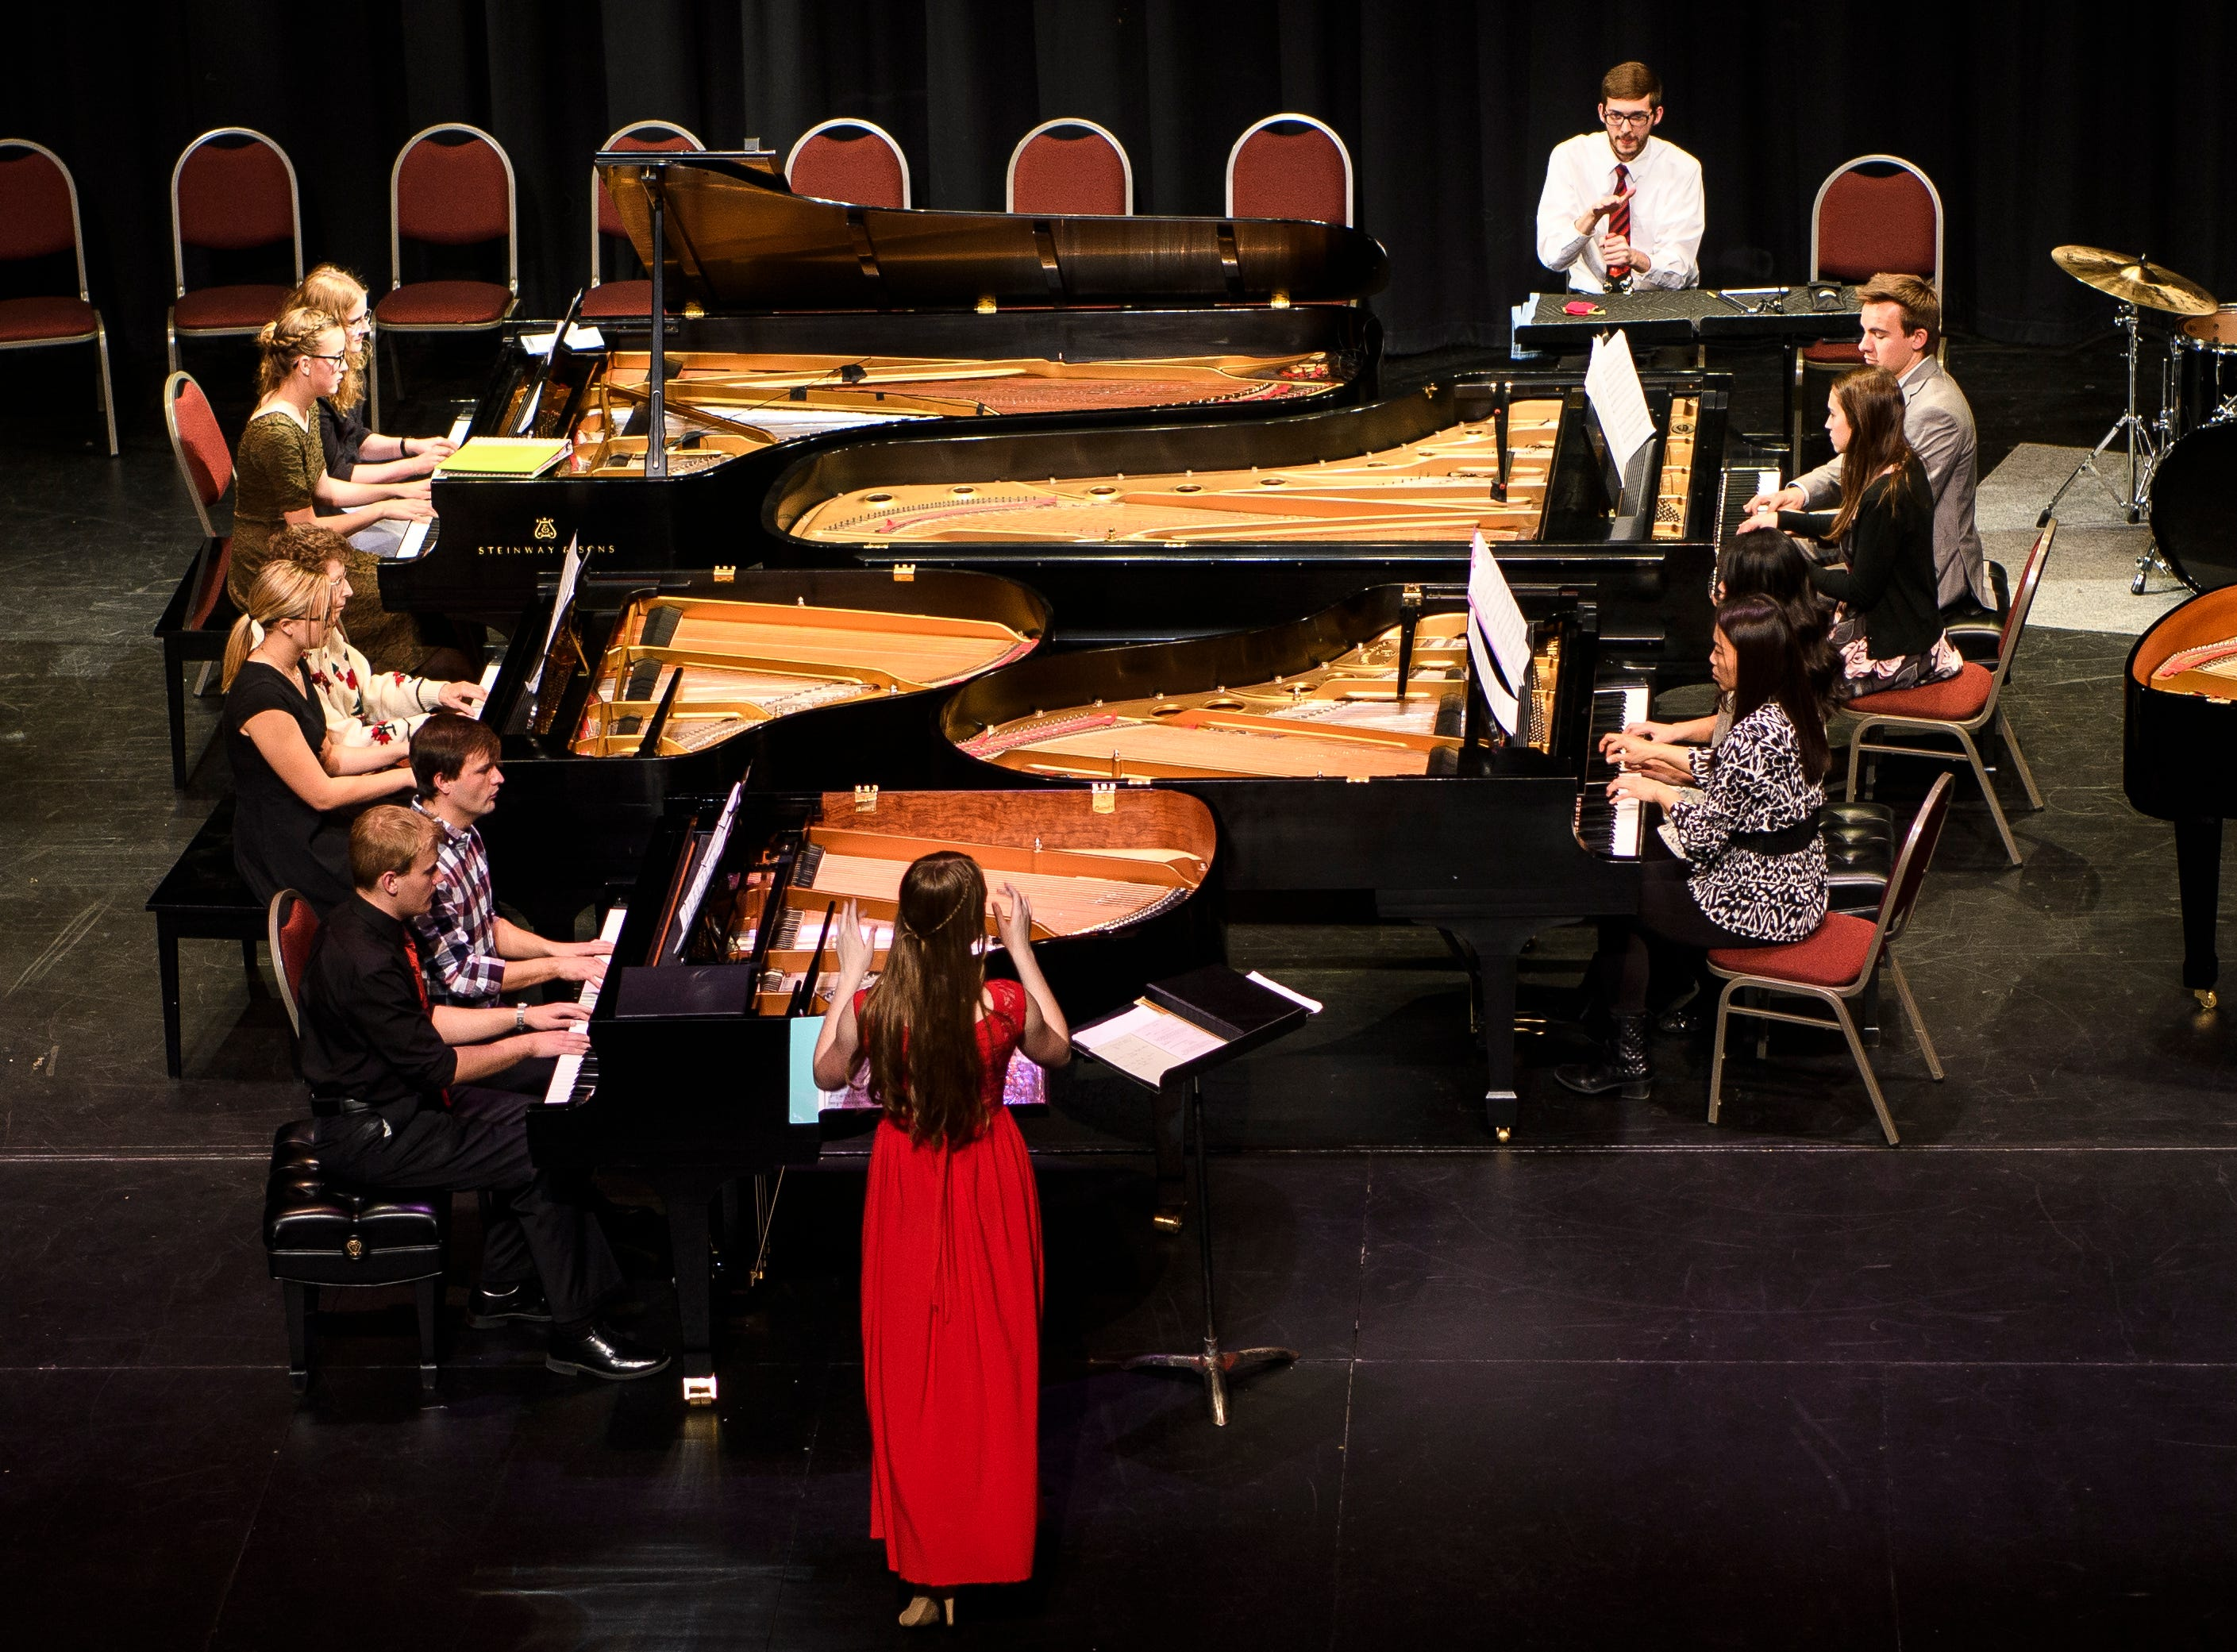 Musicians of all ages play nine grand pianos at once in the Piano Monster Concert in the Heritage Center Theater Tuesday, November 27, 2018. The concert was hosted by the Southern Utah University music department, and featured numerous Christmas songs.